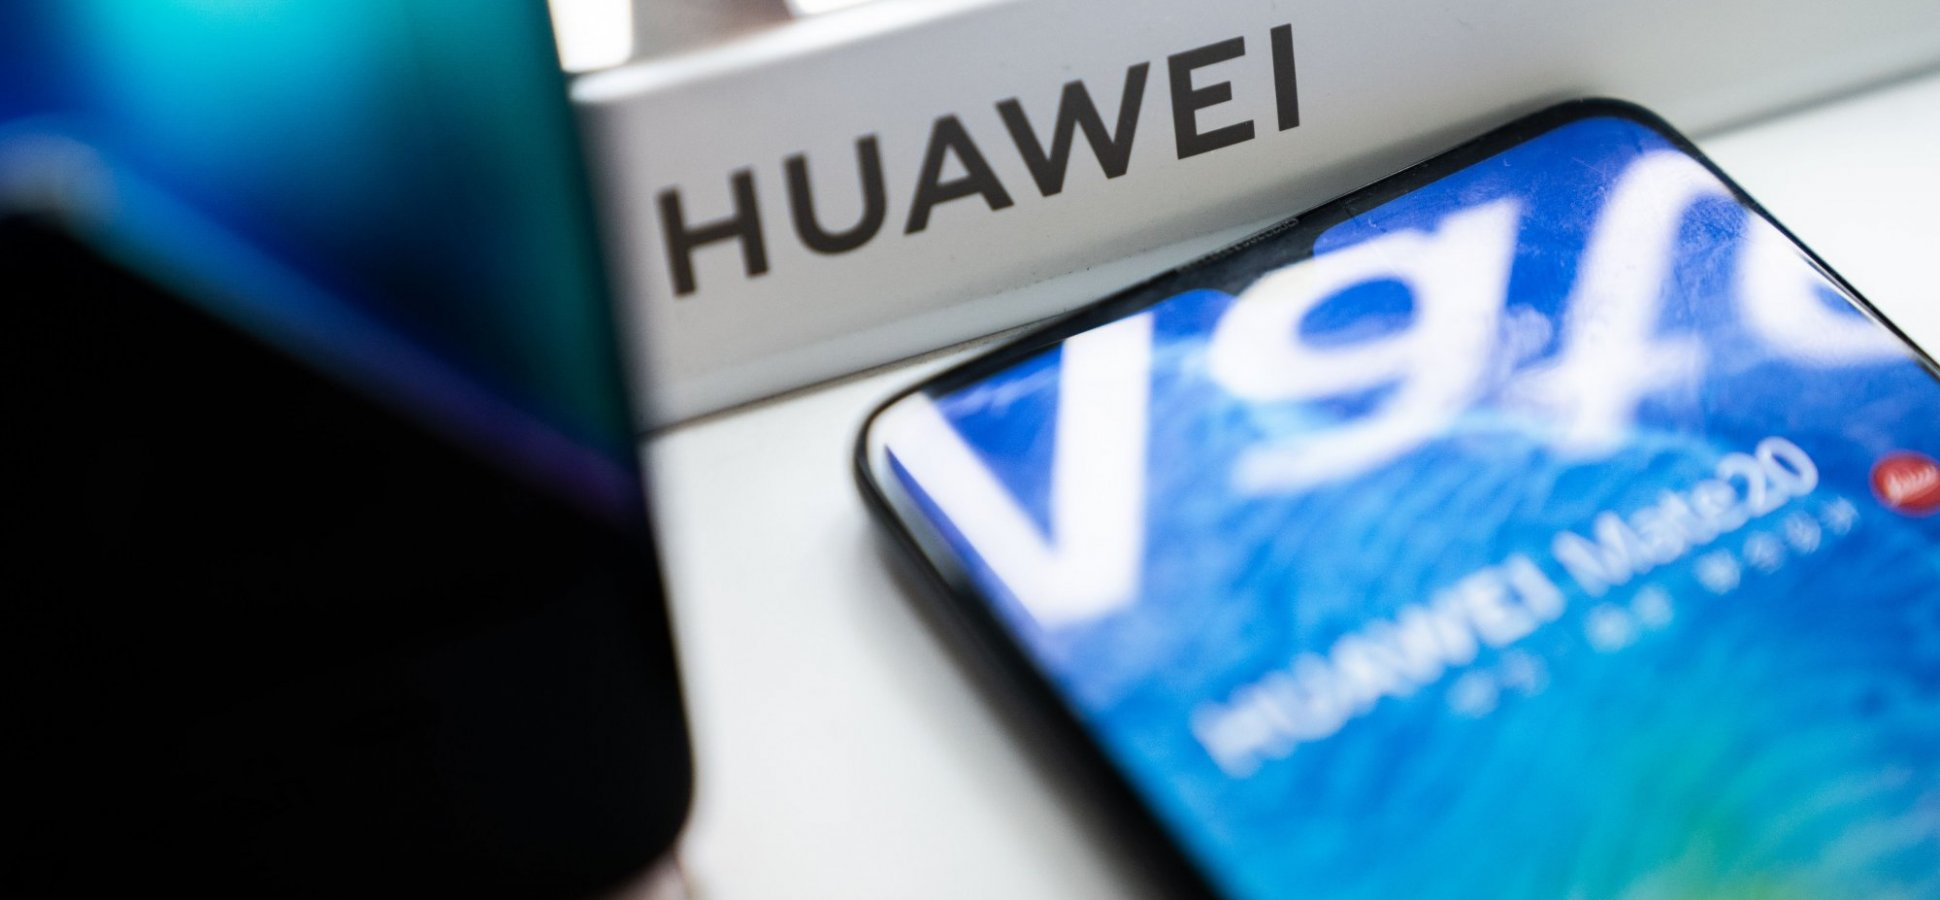 Google Severs Business Ties With Huawei Following an Executive Order From President Trump